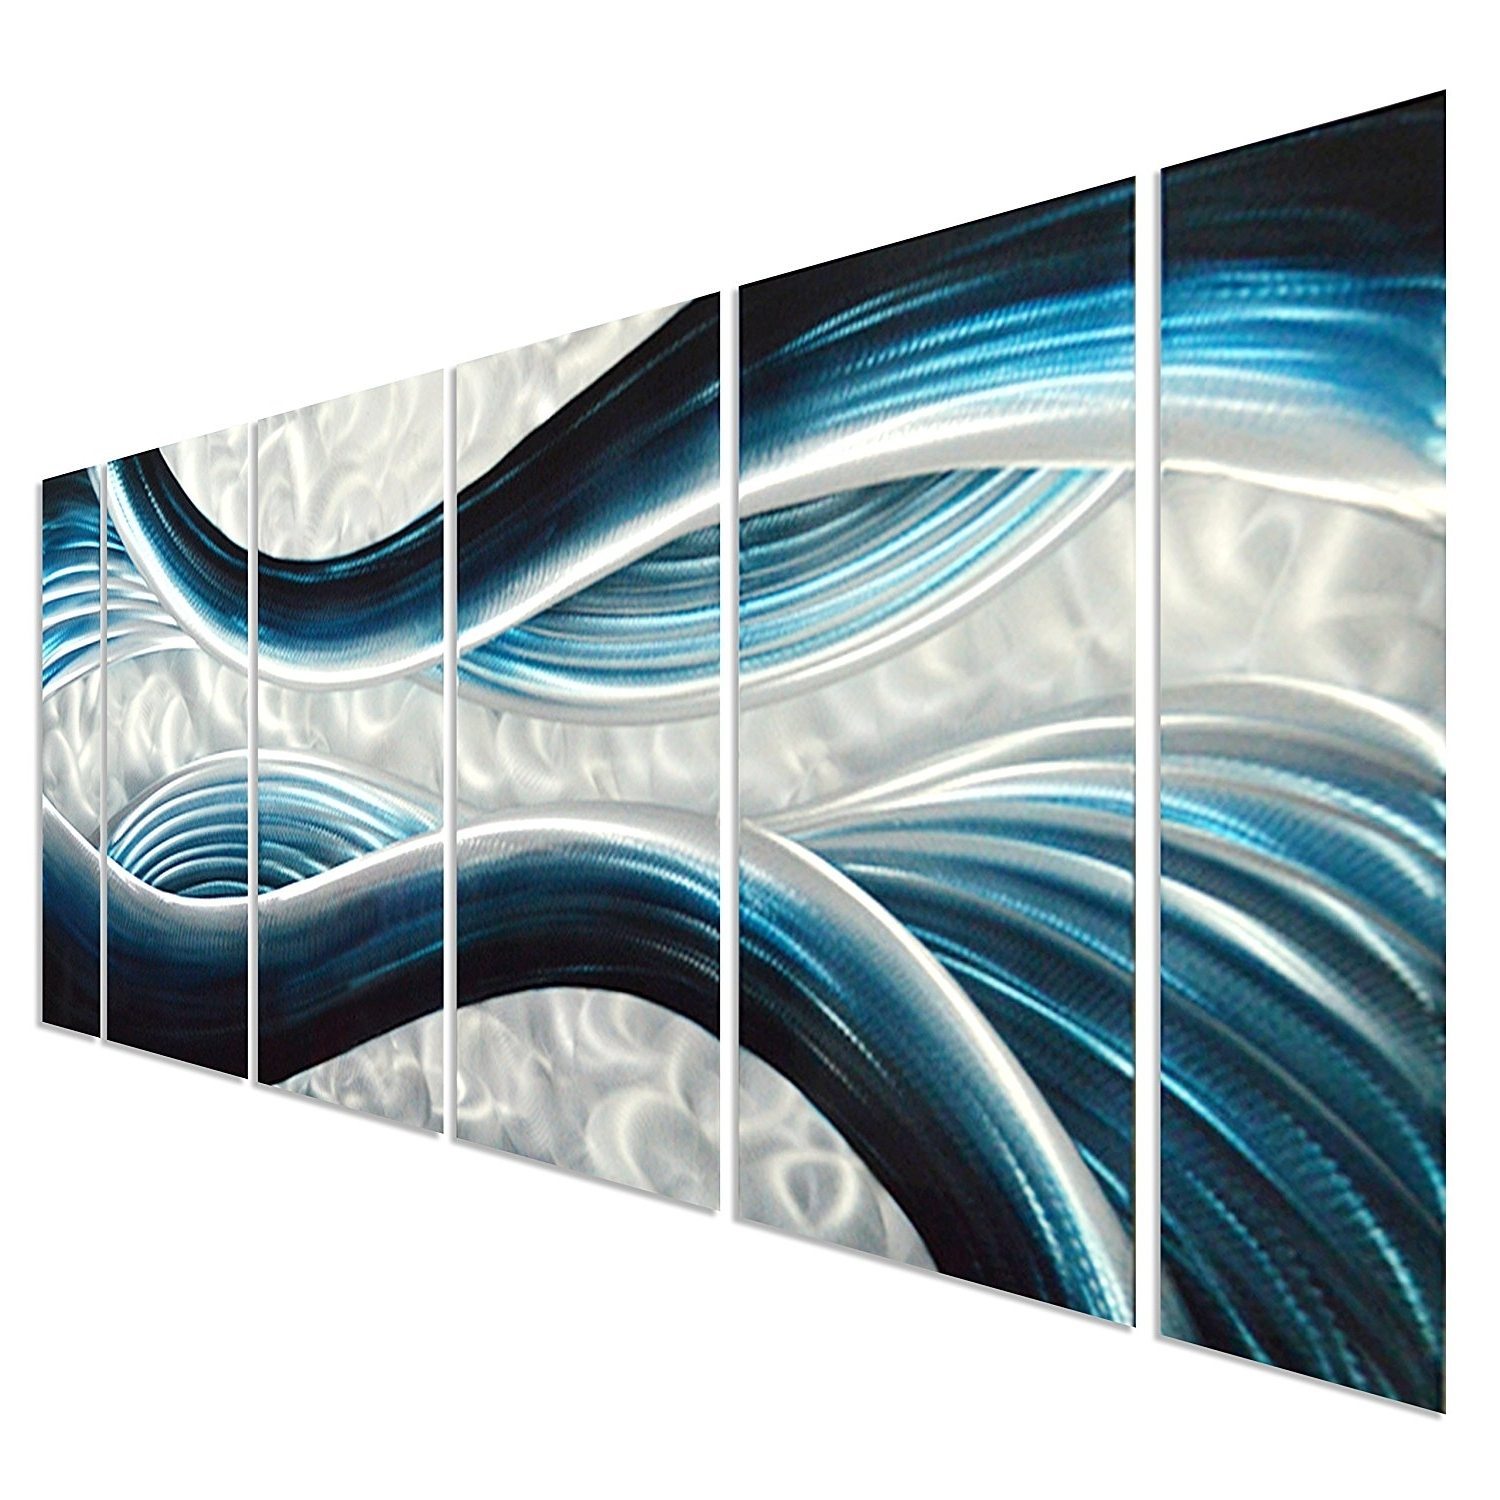 2018 Metal Wall Art Panels Australia A Decal Amazon Blue Desire Large With Abstract Ocean Wall Art (View 15 of 15)